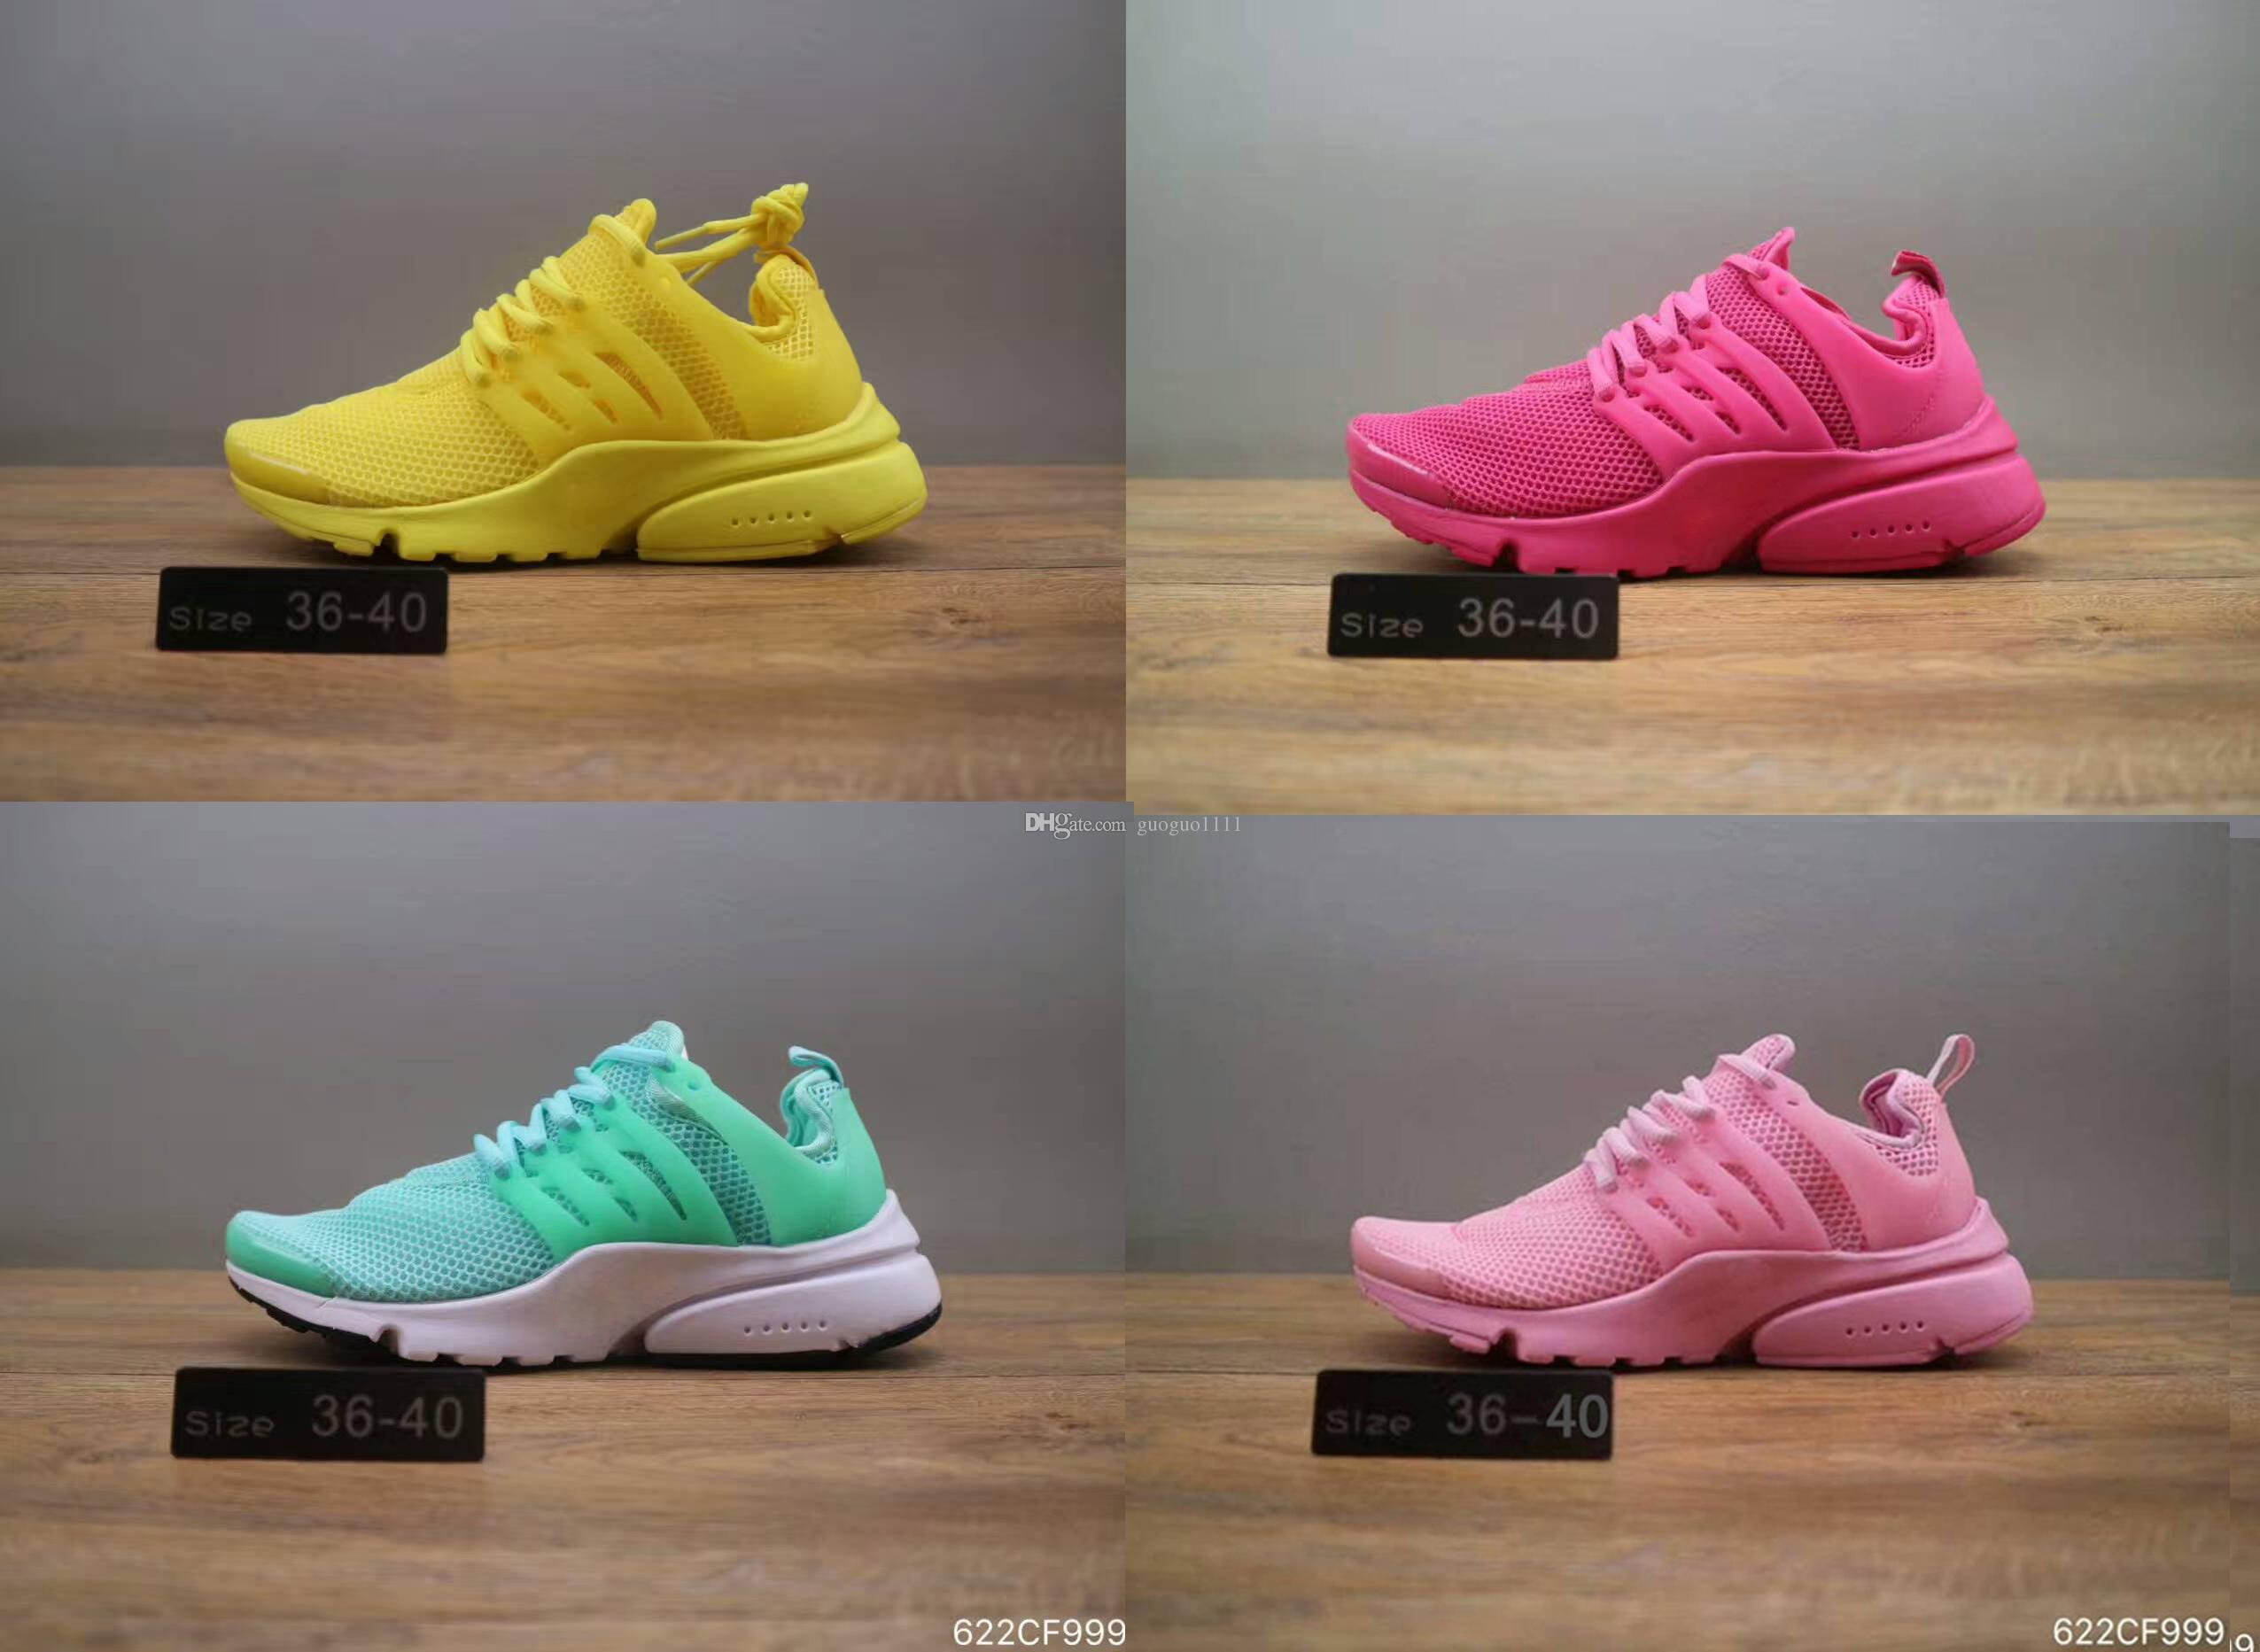 reliable for sale The Weekend x air rihanna men women Casual Shoes thick bottom XO Parallel thick bottom lace up high top zipper outdoor shoes 36-45 brand new unisex low shipping fee buy cheap many kinds of RxPUqgqg